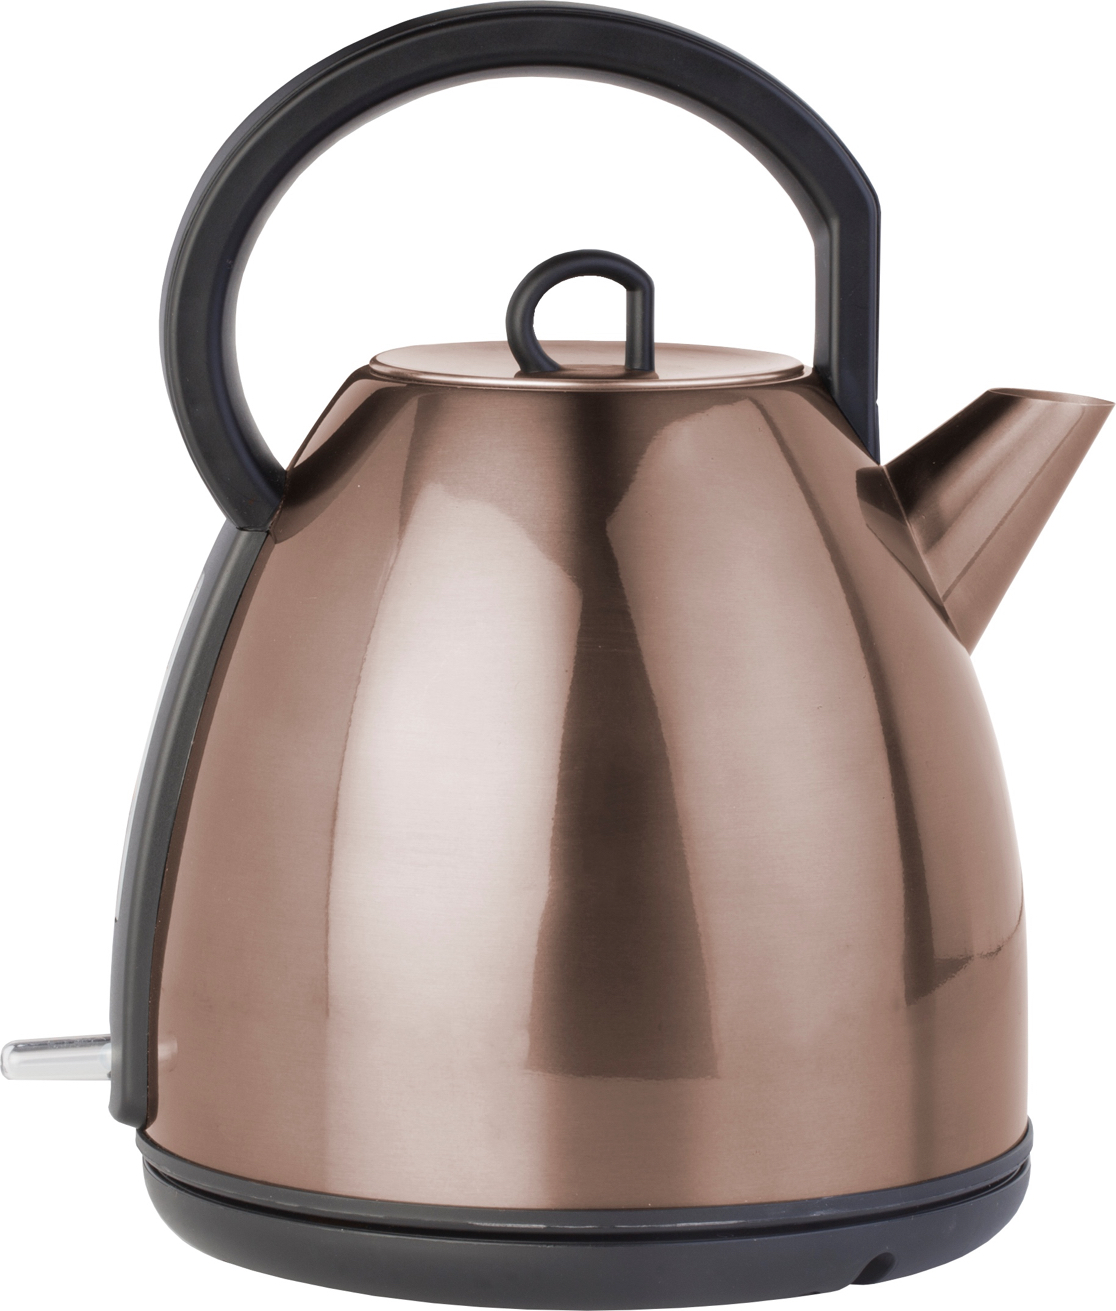 Ardes  electric water kettle  Ketty Retro  1.7 Litres ❁ stainless steel❁ colour: copper